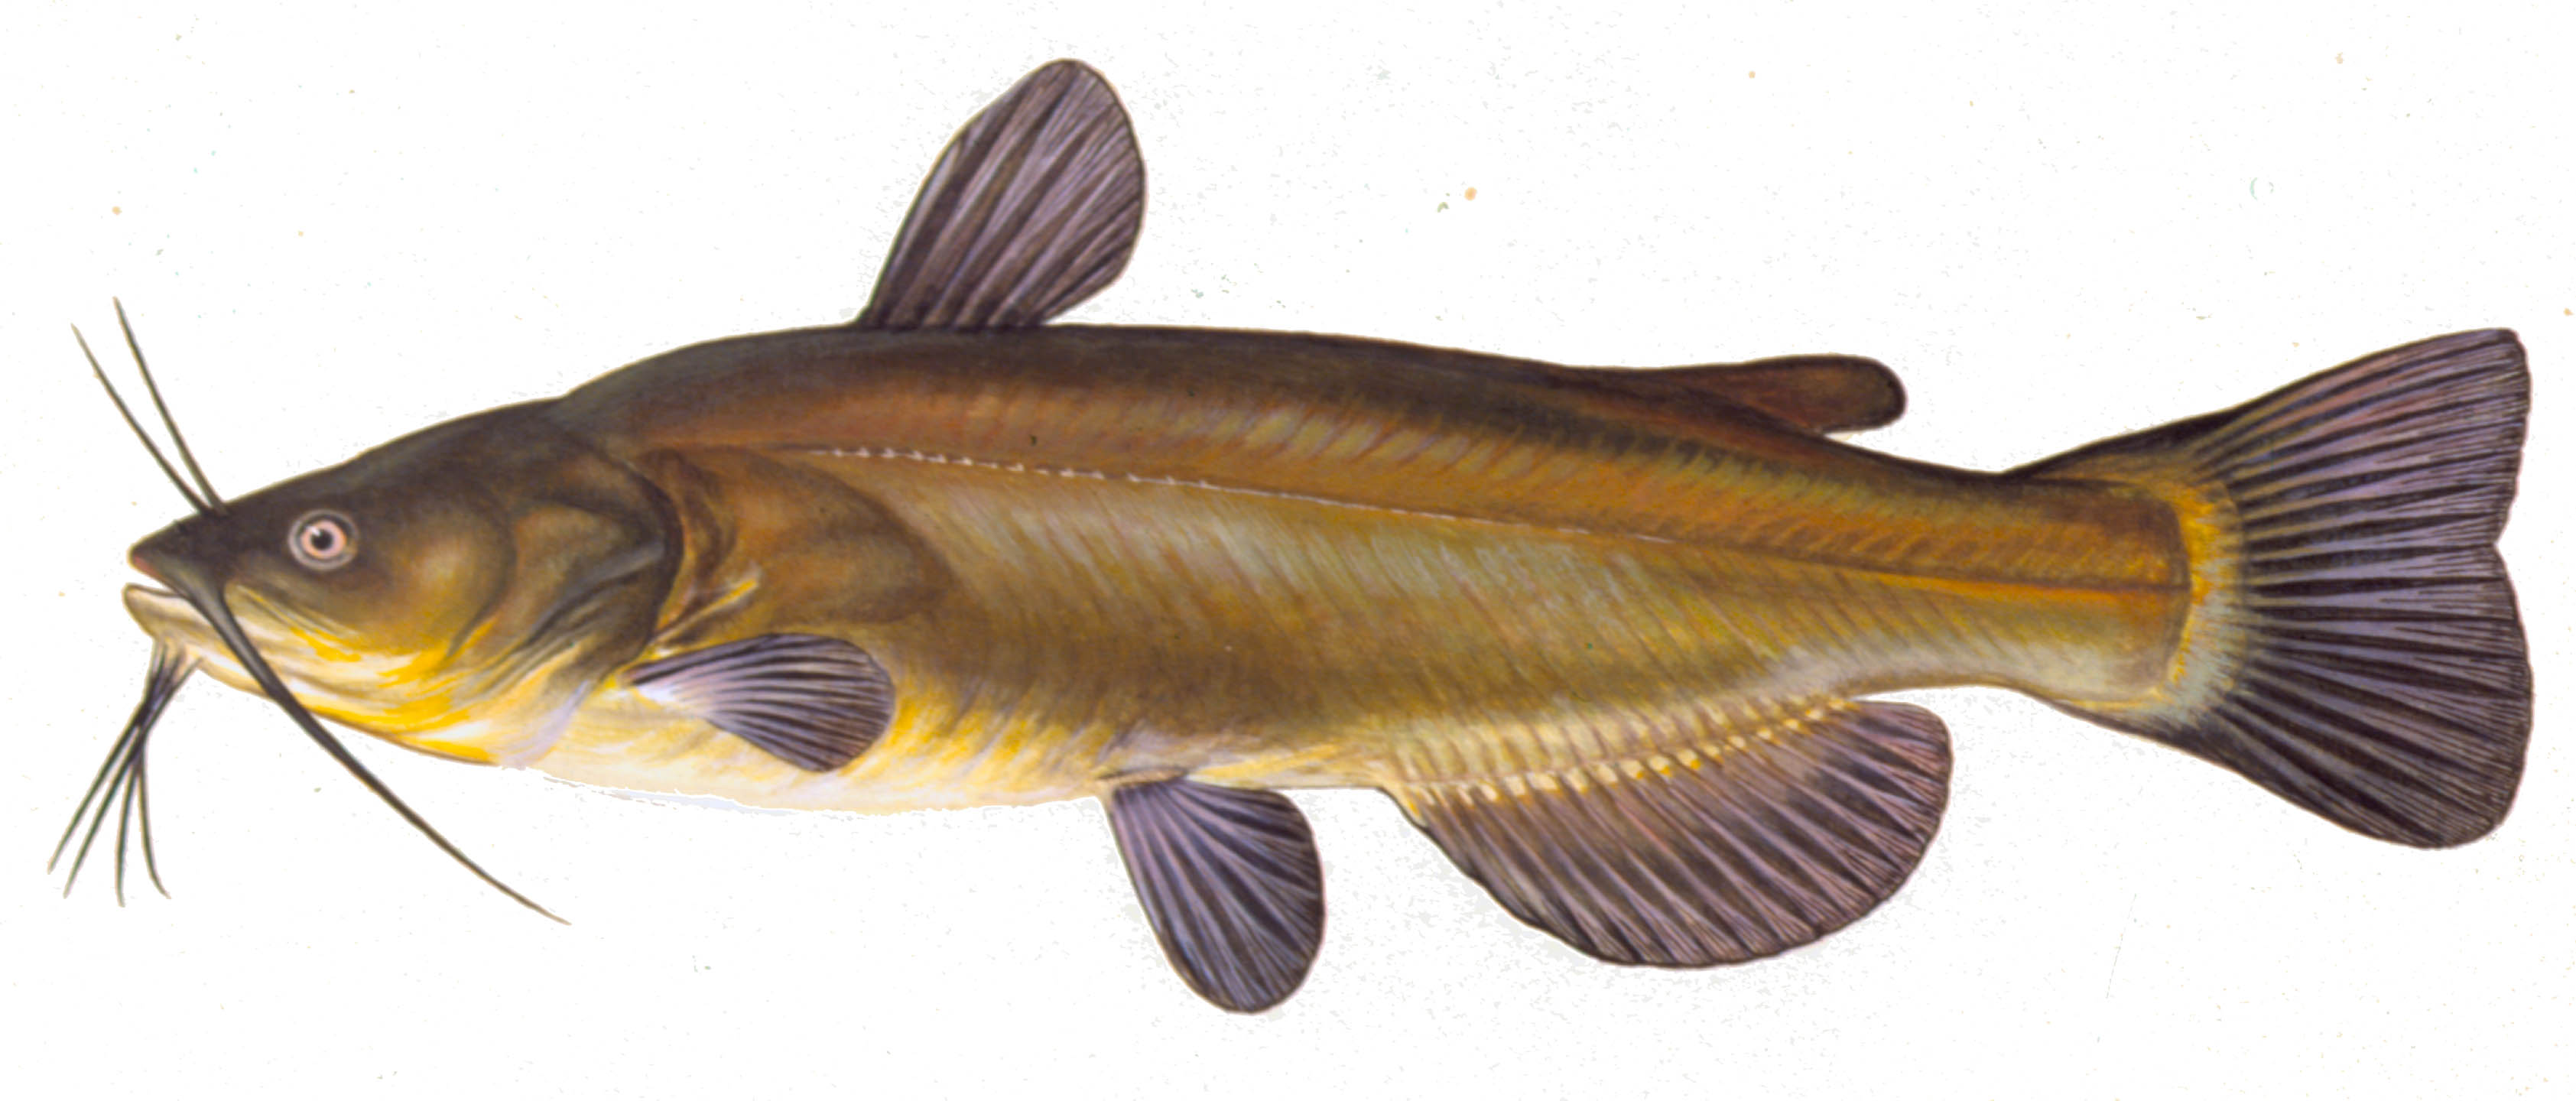 Black Bullhead, illustration by Maynard Reece, from Iowa Fish and Fishing.